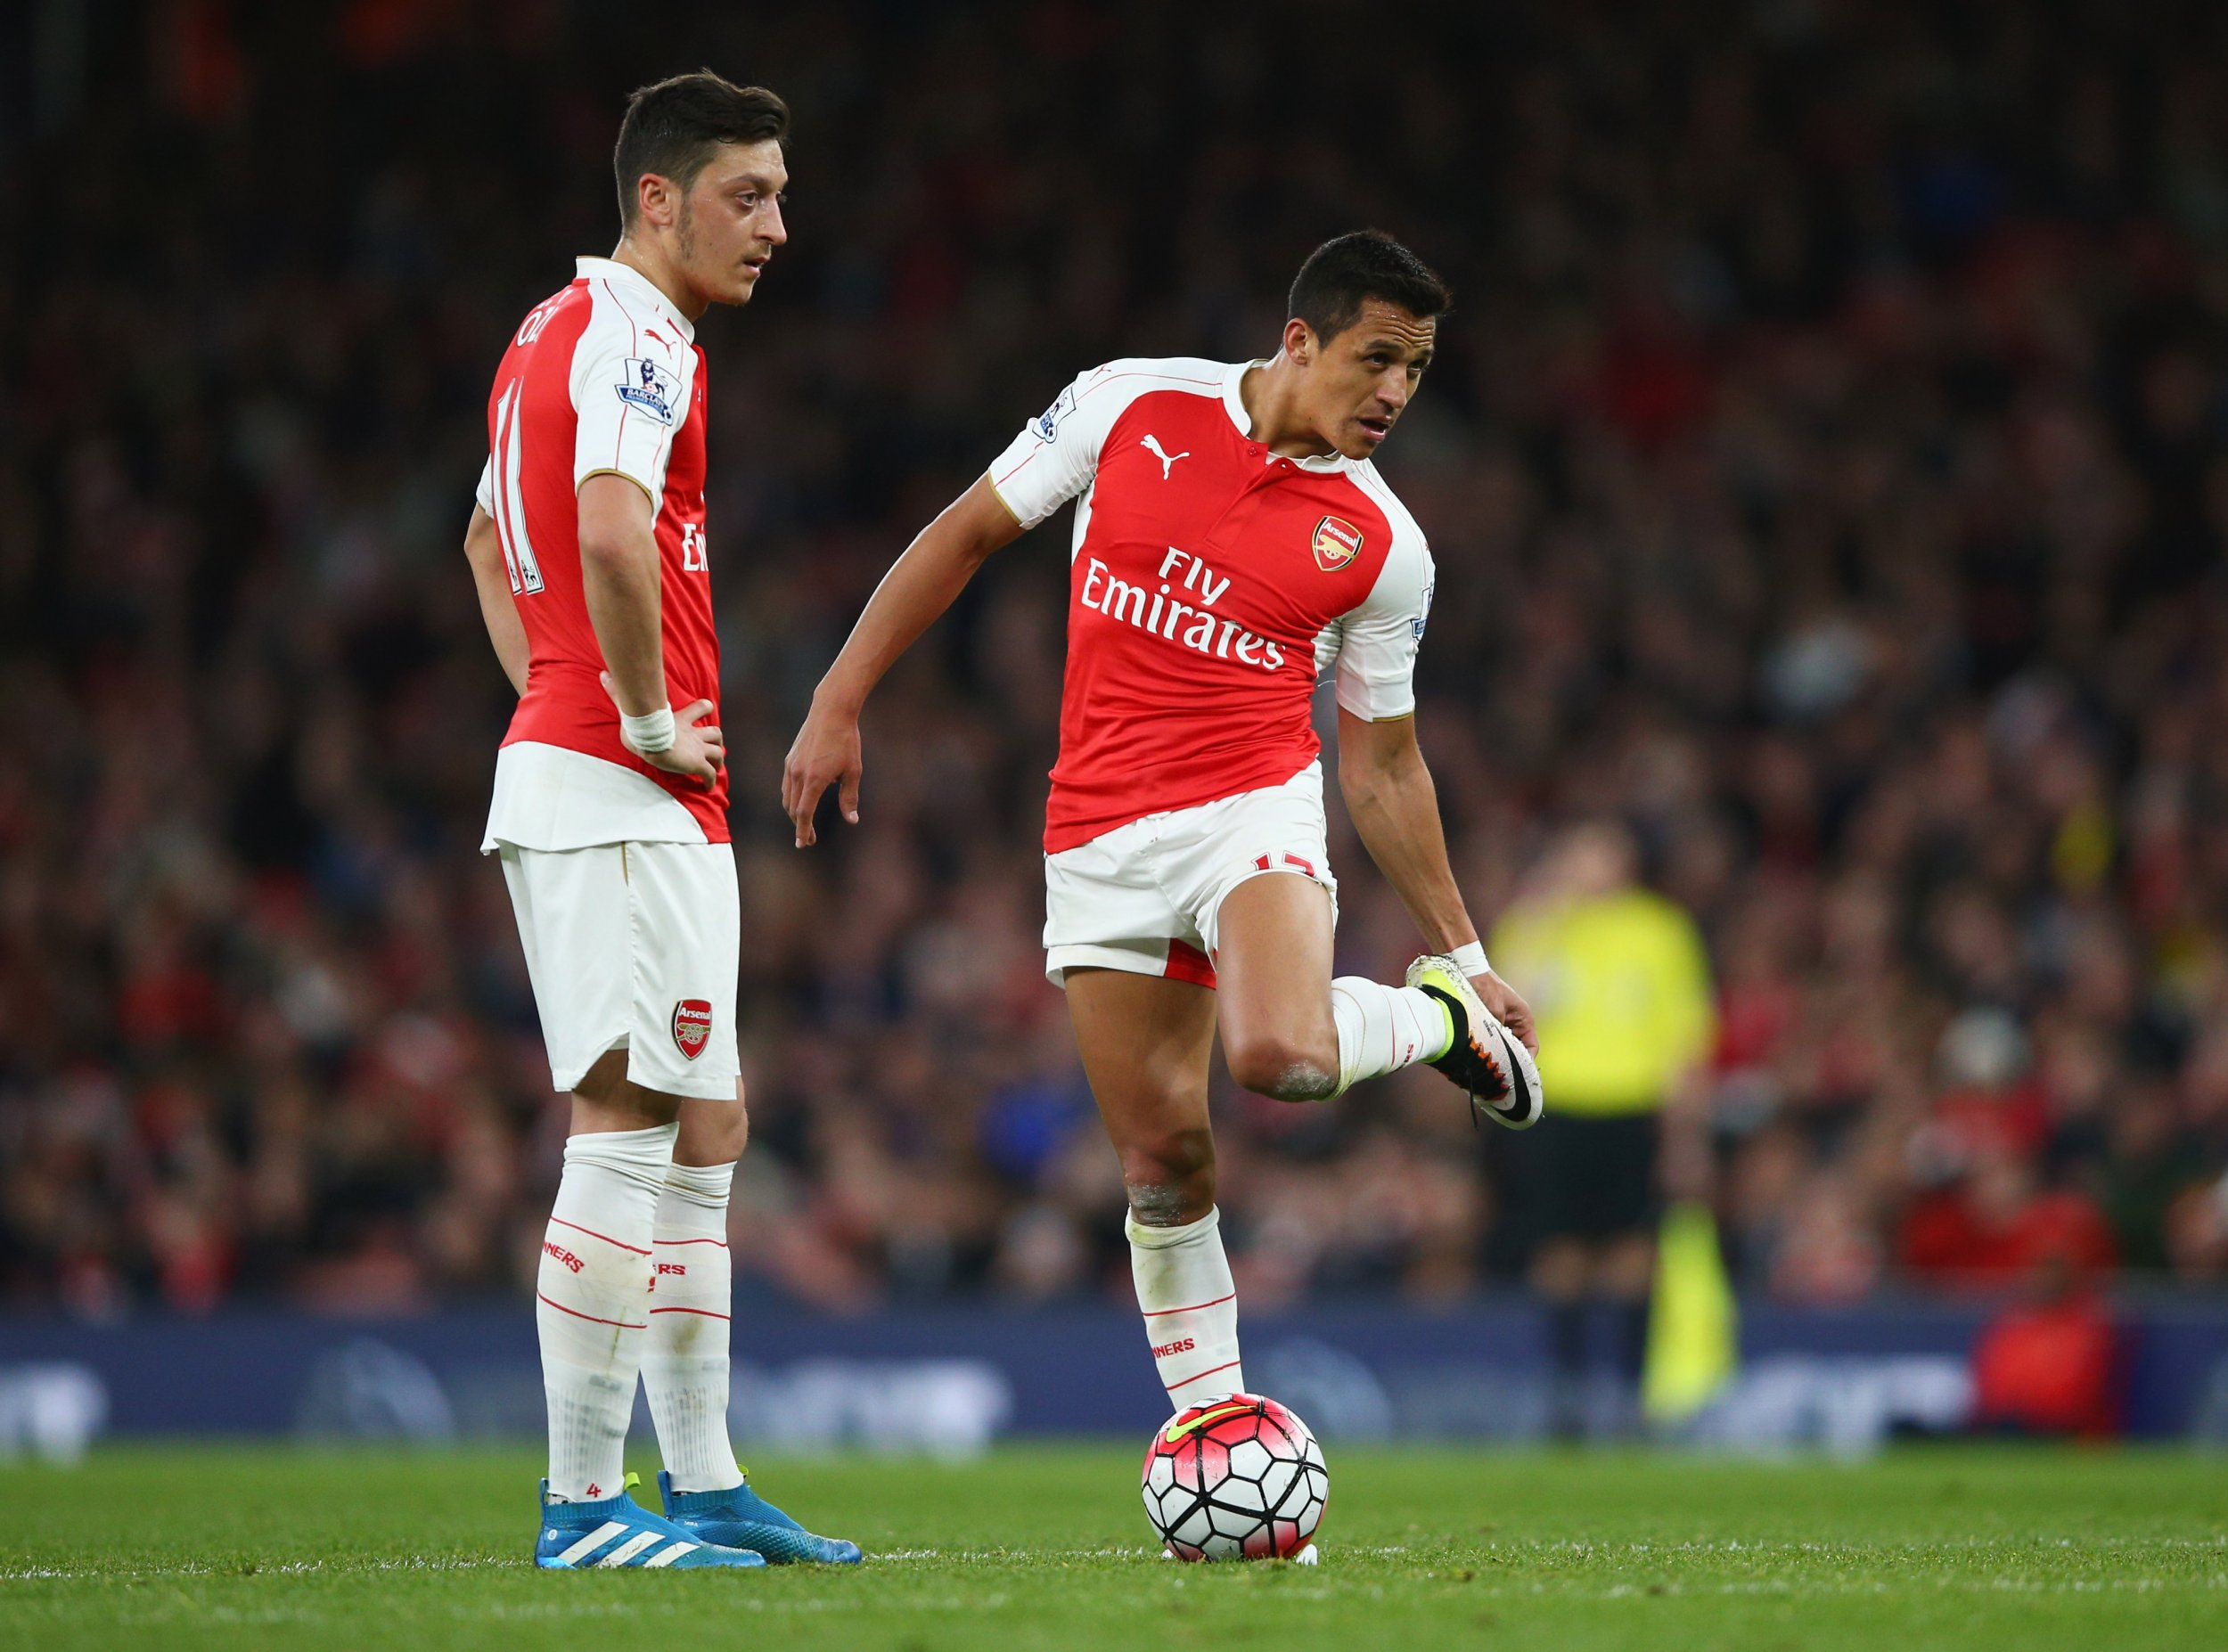 Arsenal players Mesut Ozil, left, and Alexis Sanchez.